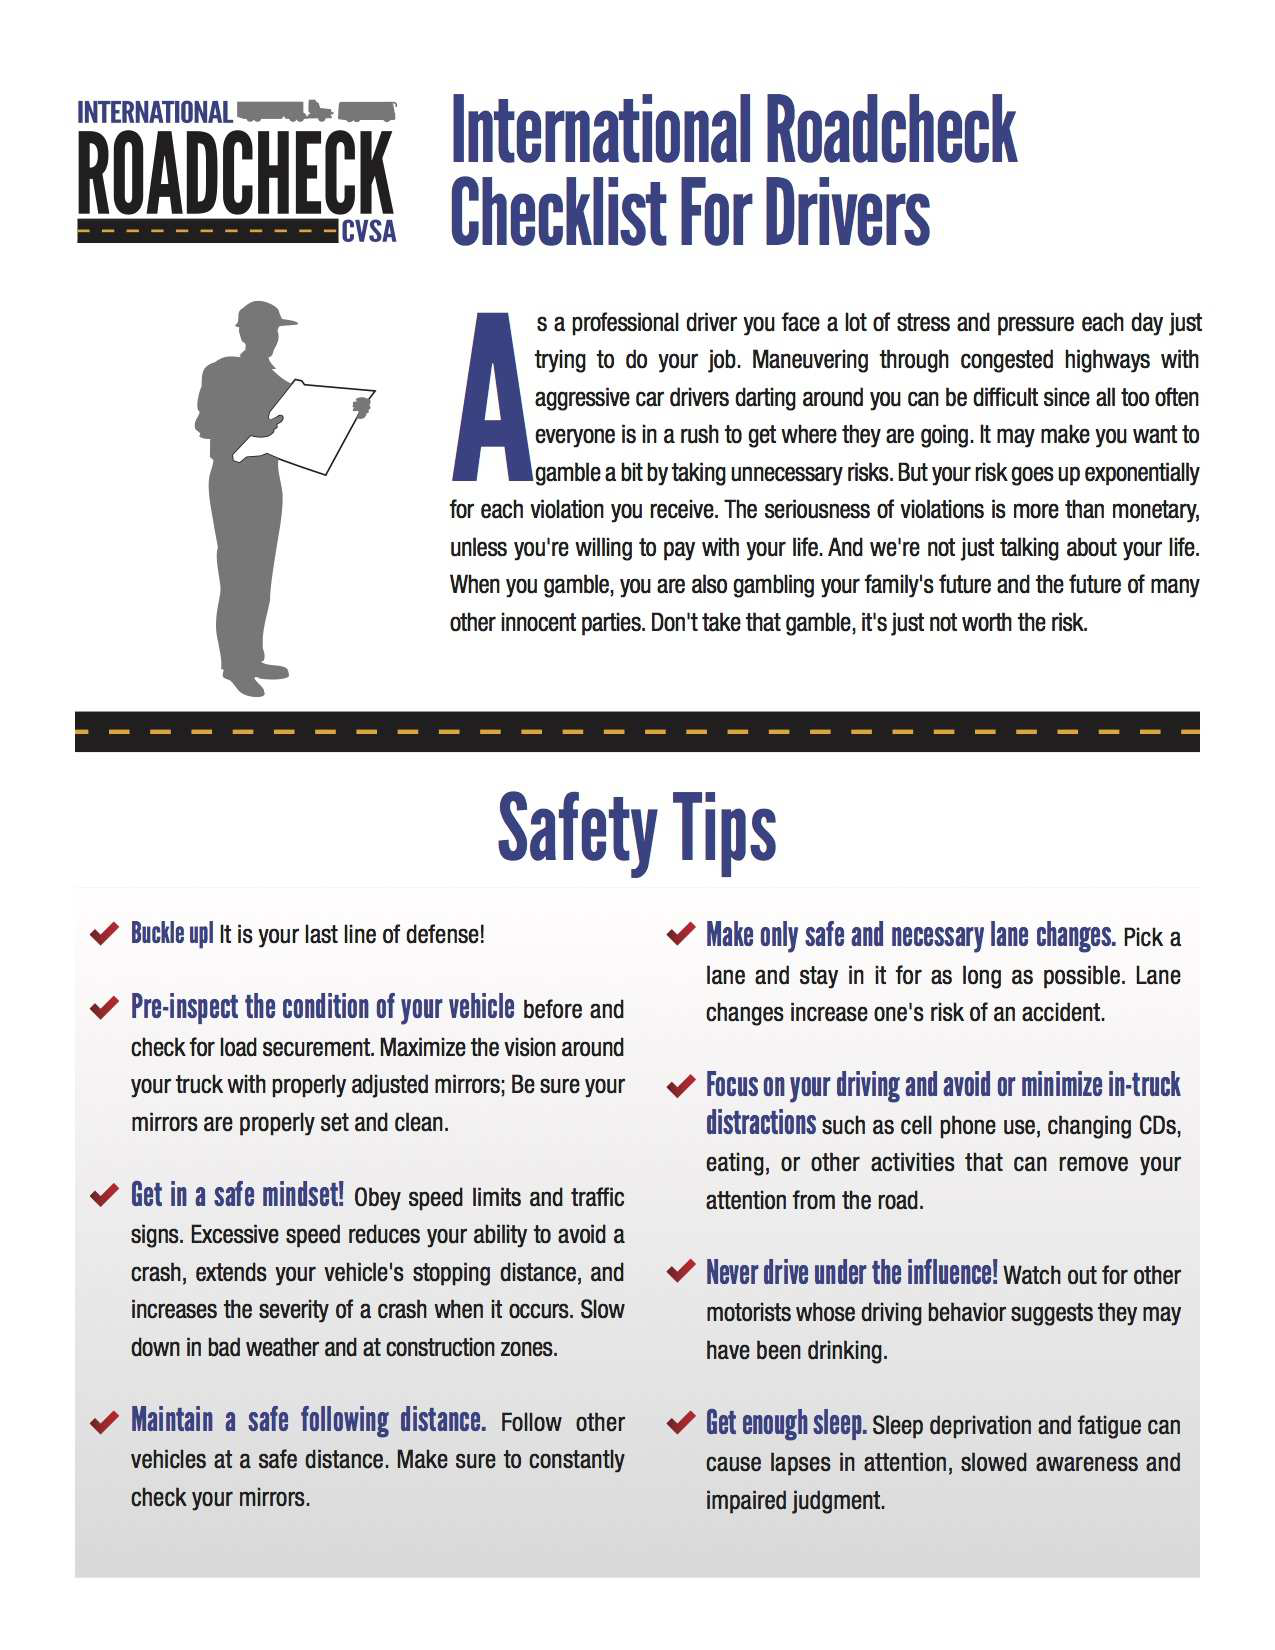 roadcheck-checklist-for-drivers-02202015